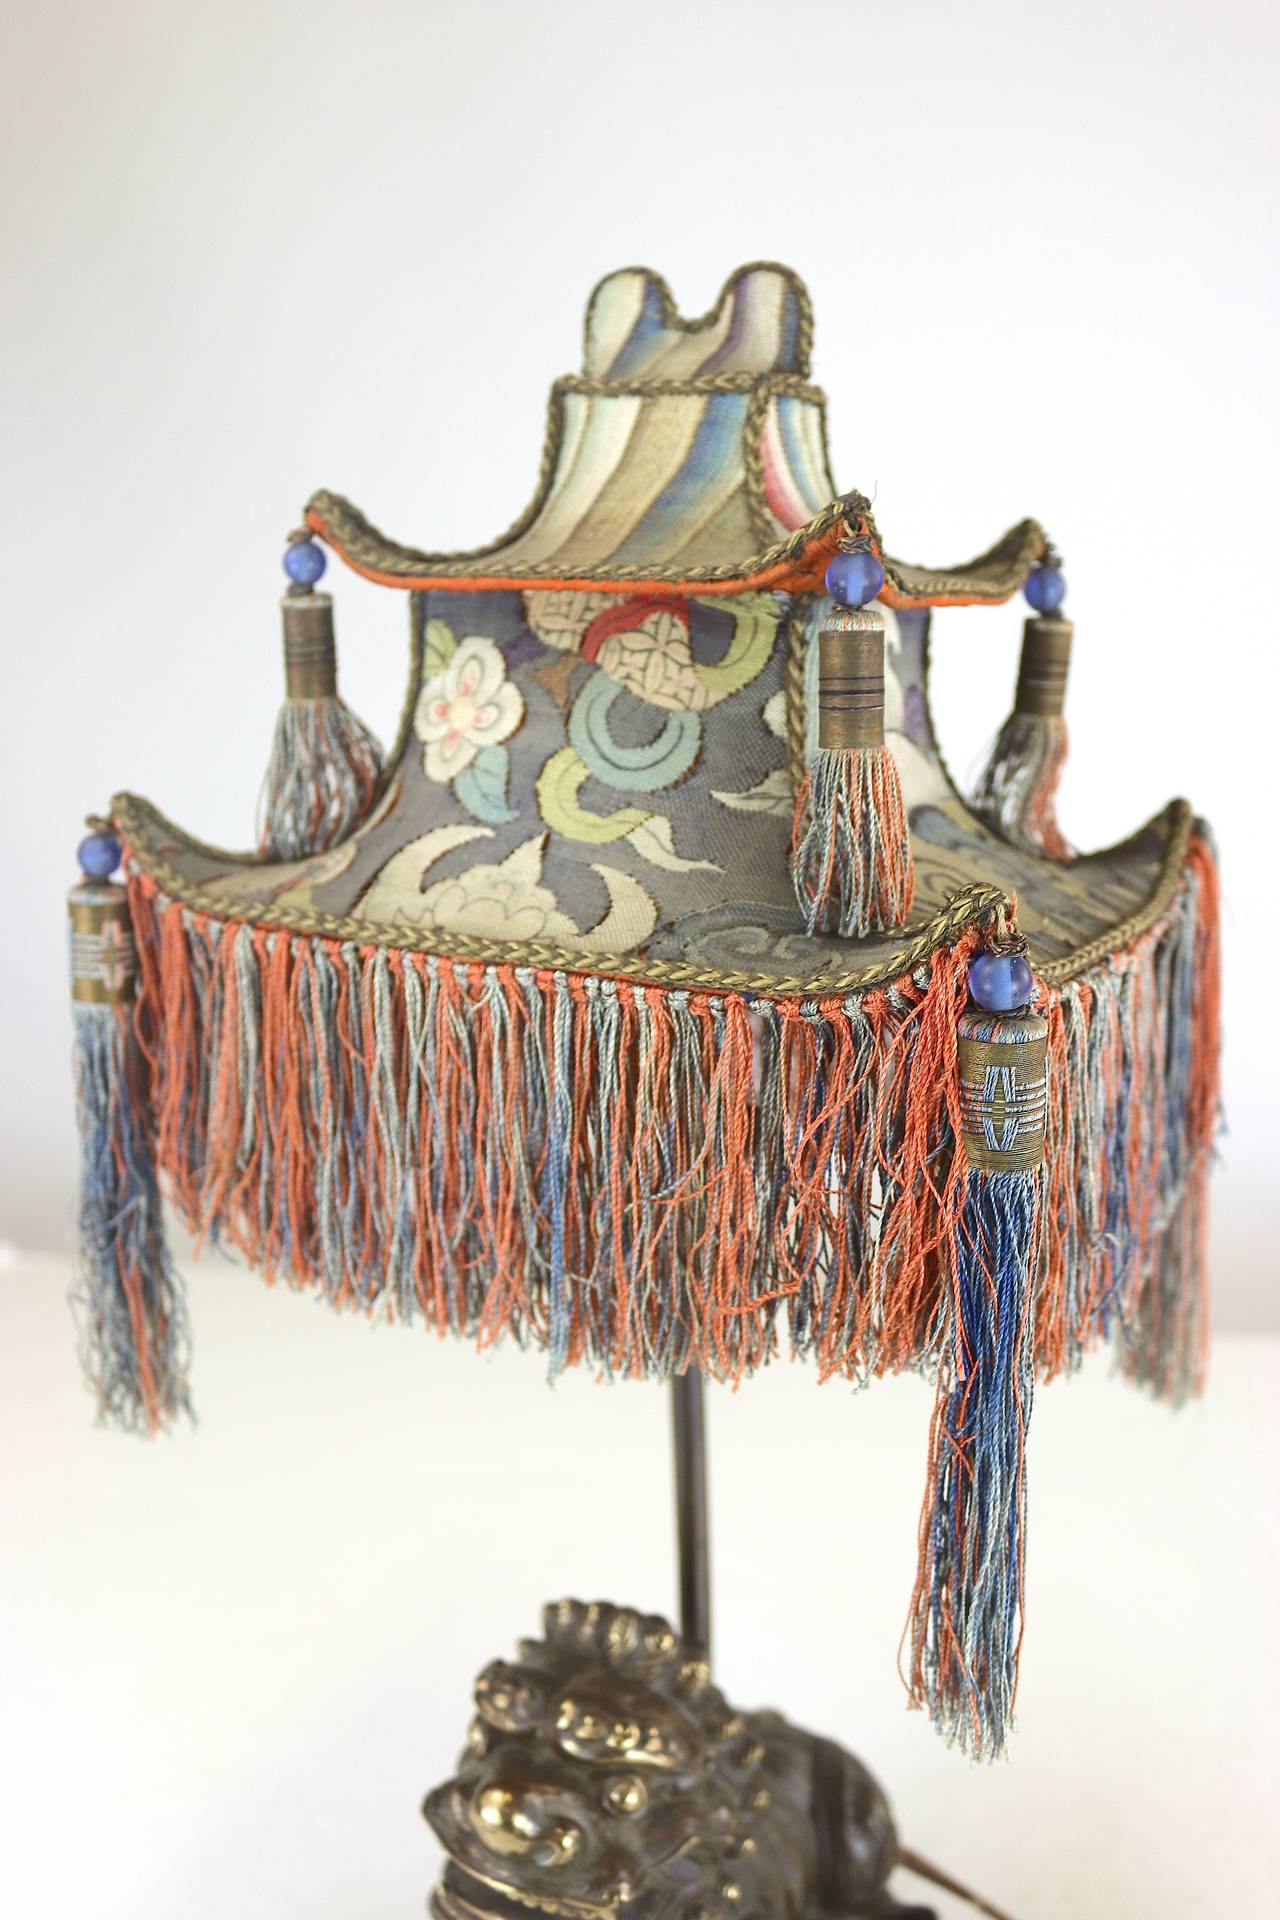 Rare Exotic 1920s Chinoiserie Lamp of Tasseled Pagoda Shade with Foo Dog Base In Good Condition For Sale In West Palm Beach, FL